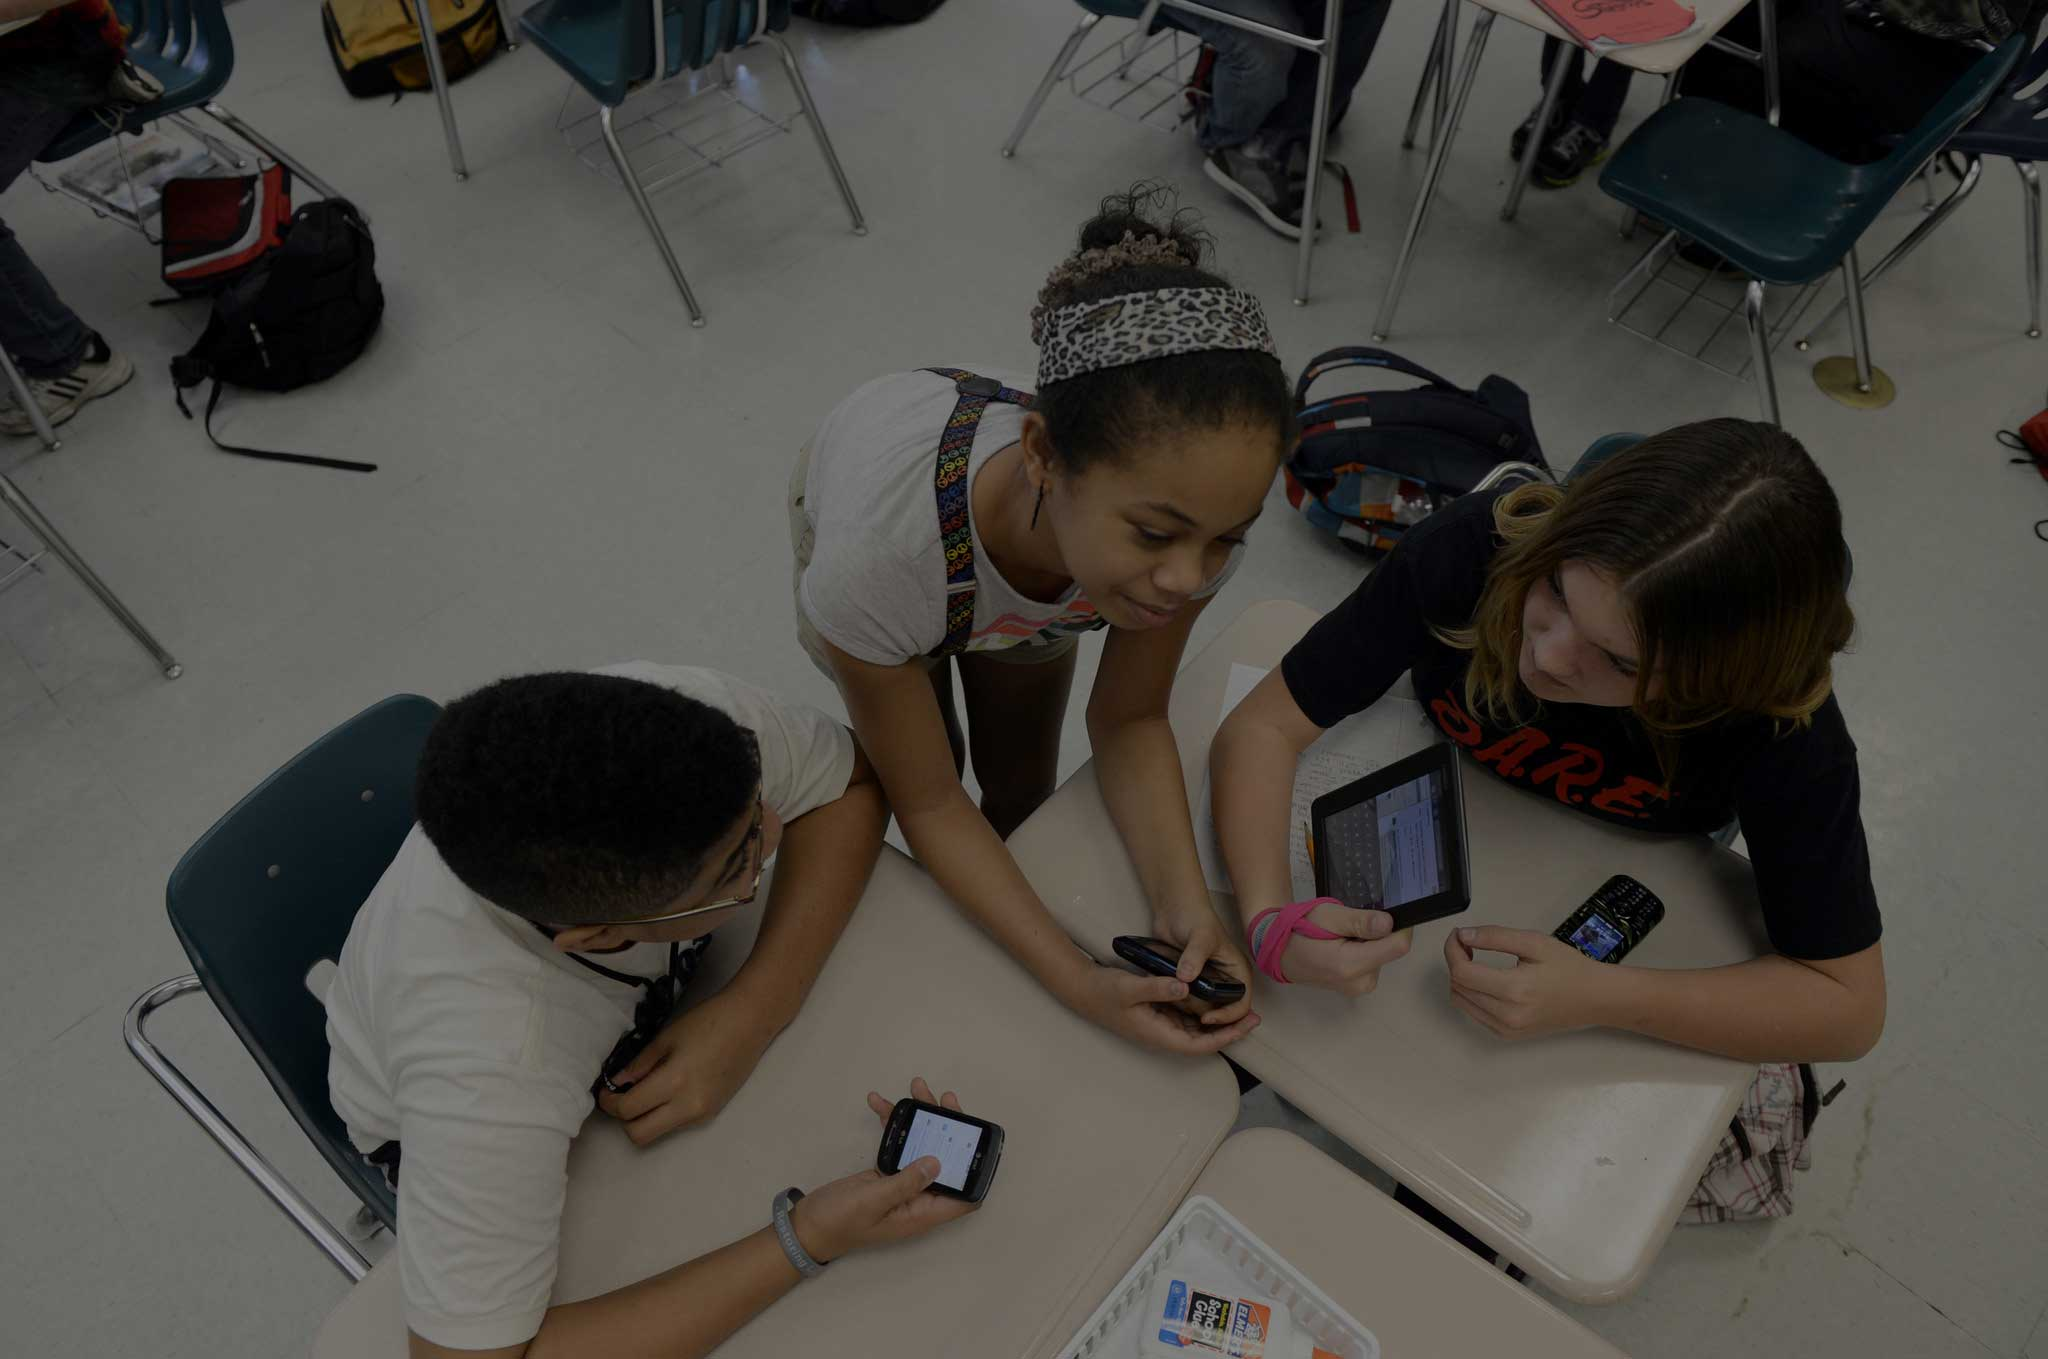 BYOD K-12: Bring Your Own Device Questions to Ask to Avoid Problems